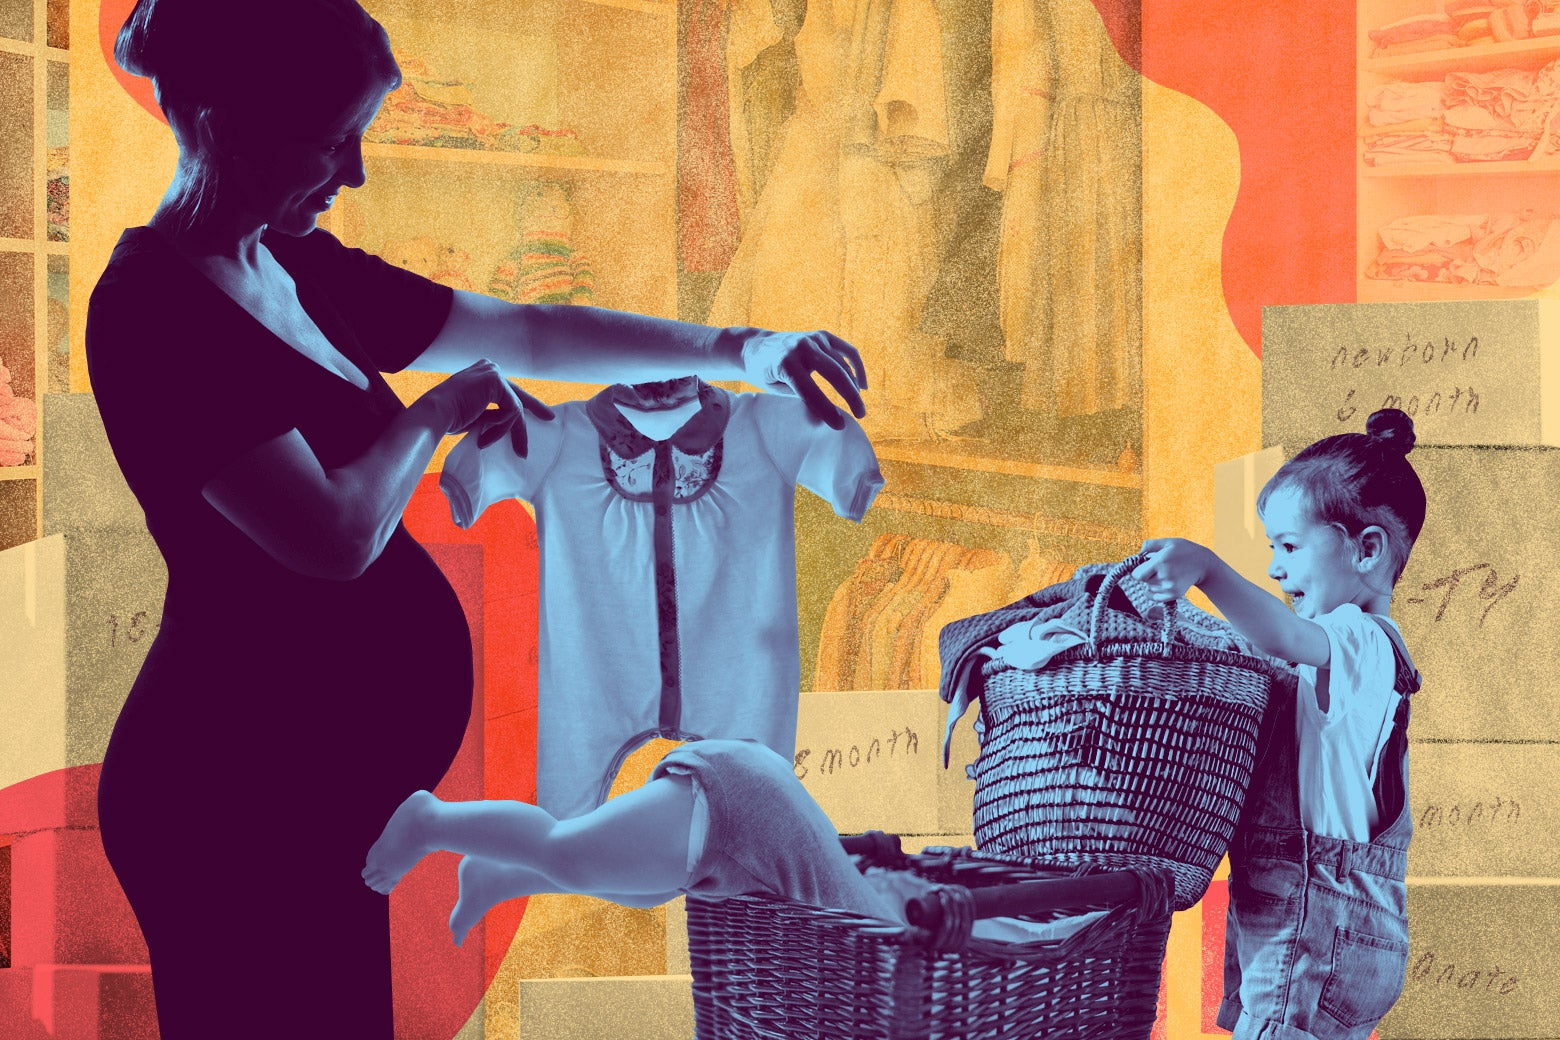 A pregnant woman holds up a onesie as a child carries a basket full of clothes. A doll spills out of another basket, and boxes are piled behind them.